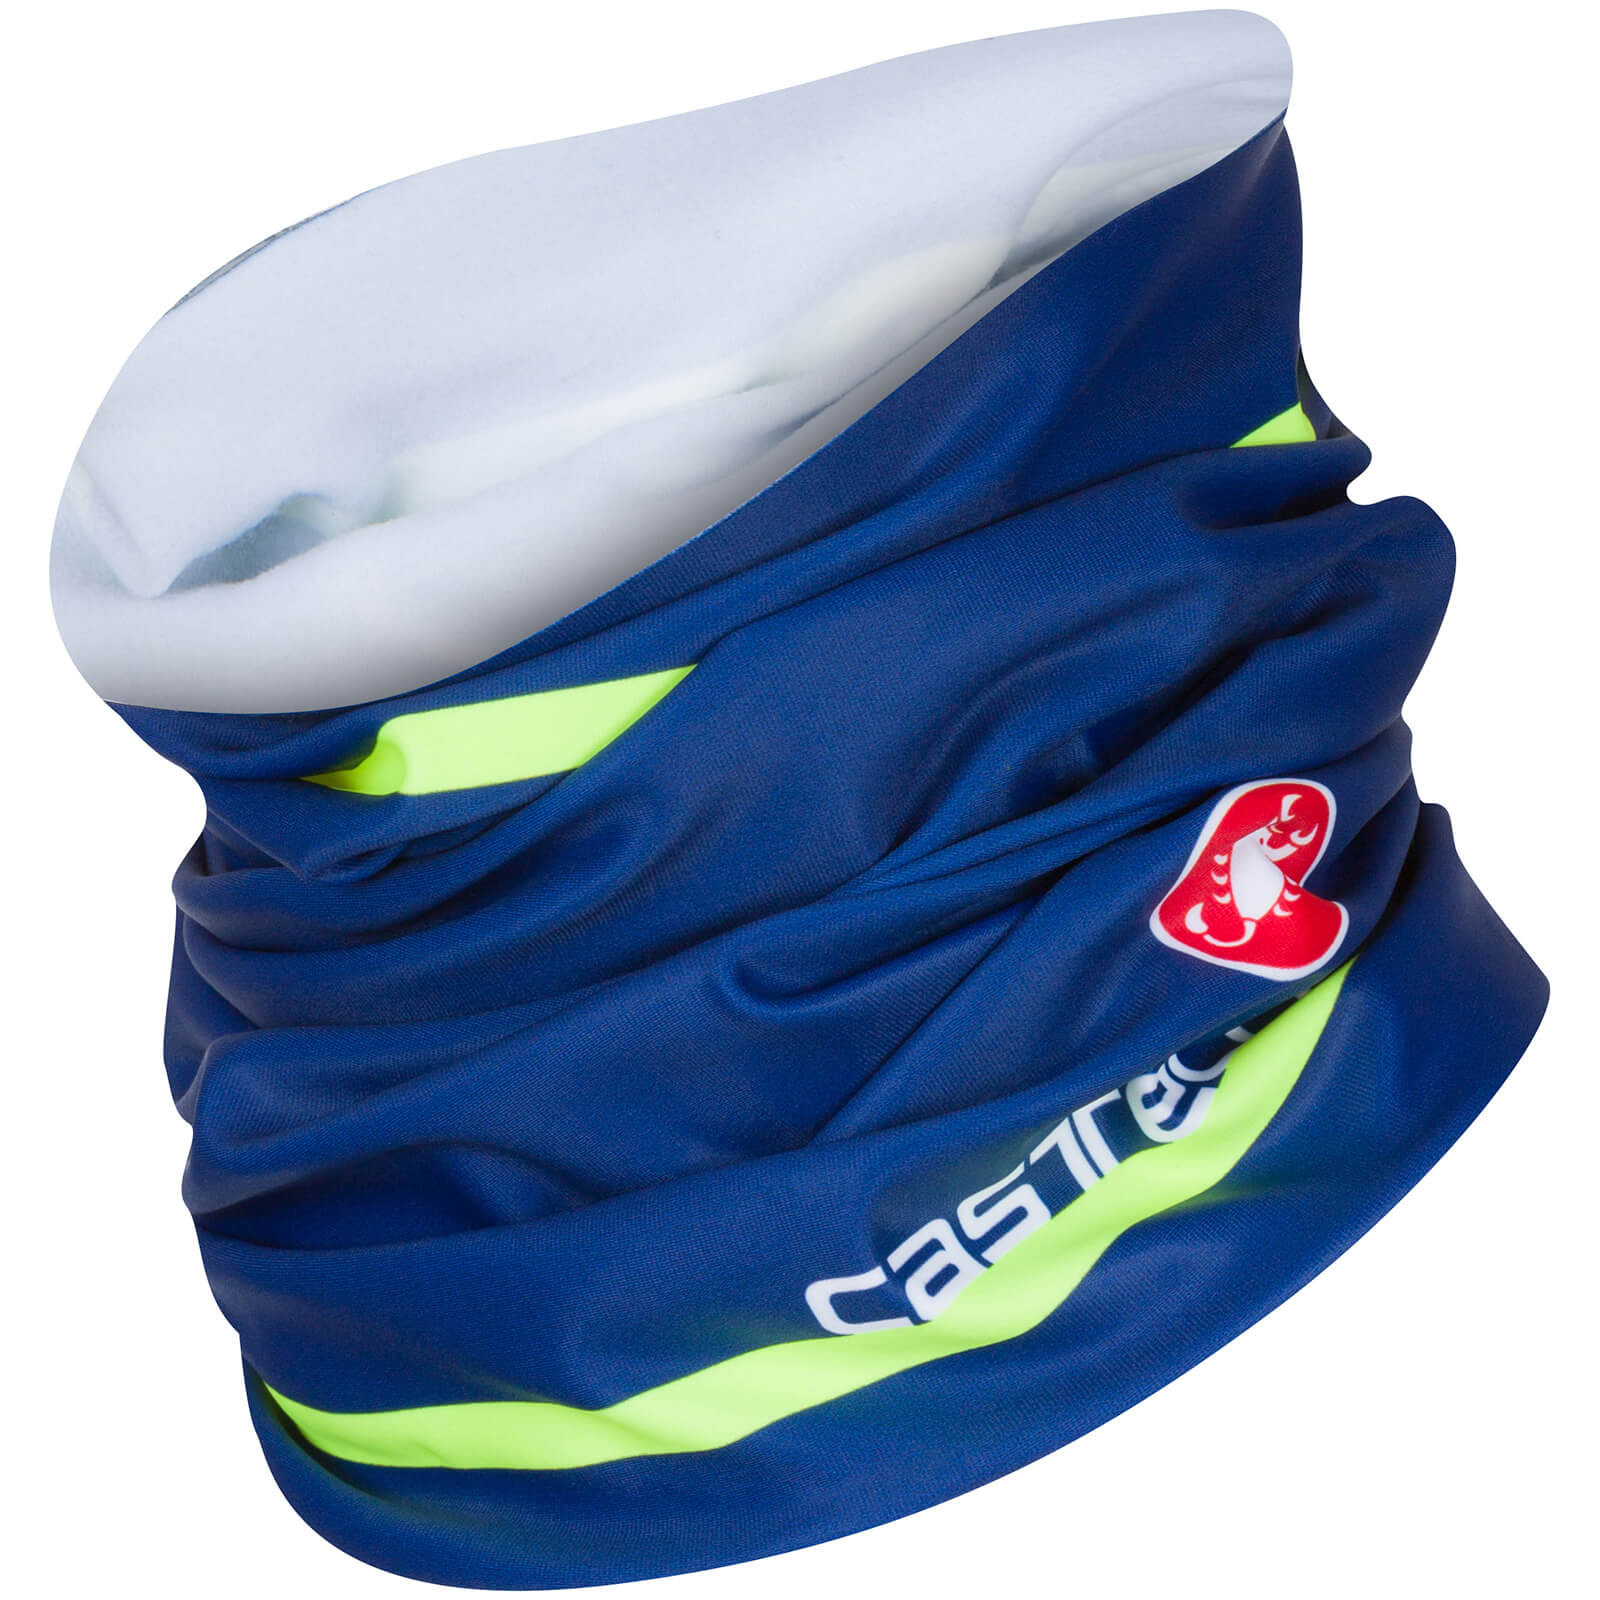 Castelli Arrivo 2 Thermo Head Thingy - Ceramic Blue